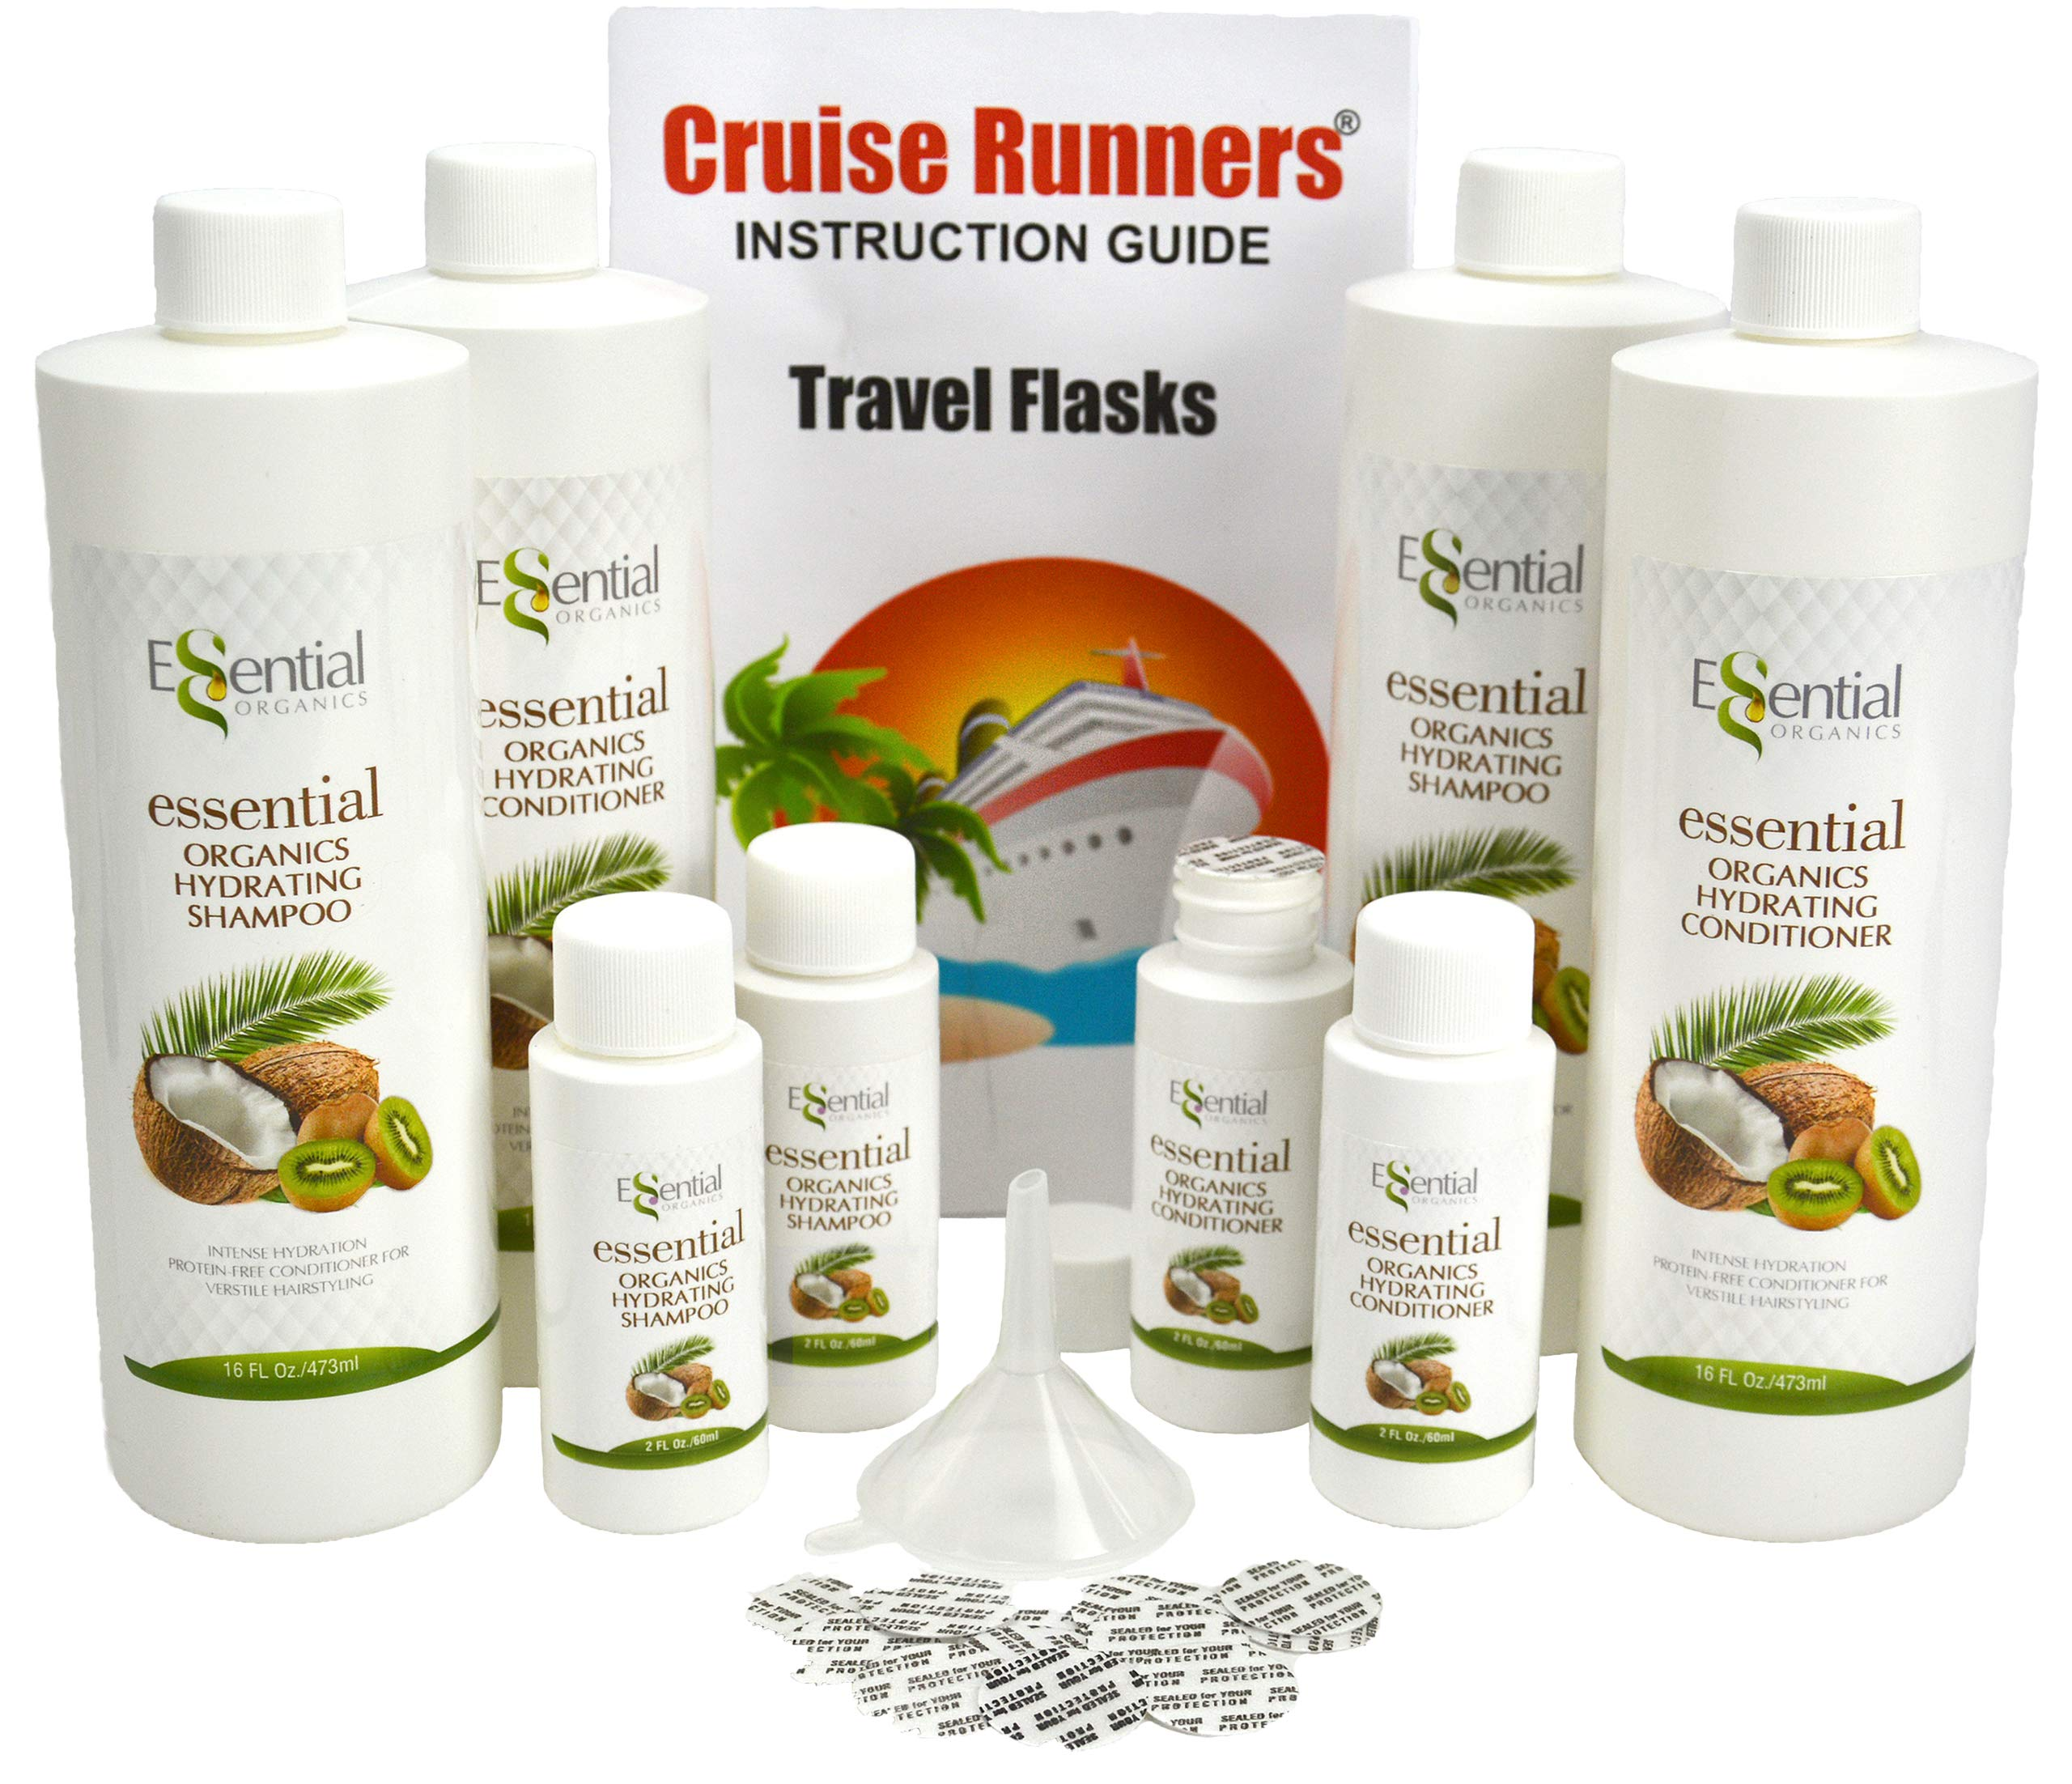 CRUISE RUNNERS Fake Shampoo Conditioner Flask Kit For Hiding Hidden Liquor Sneak Smuggle Alcohol On Booze Cruise With 4 TSA Travel Size Plastic Bottles and Seals Enjoy Rum Runners by Cruise Runners